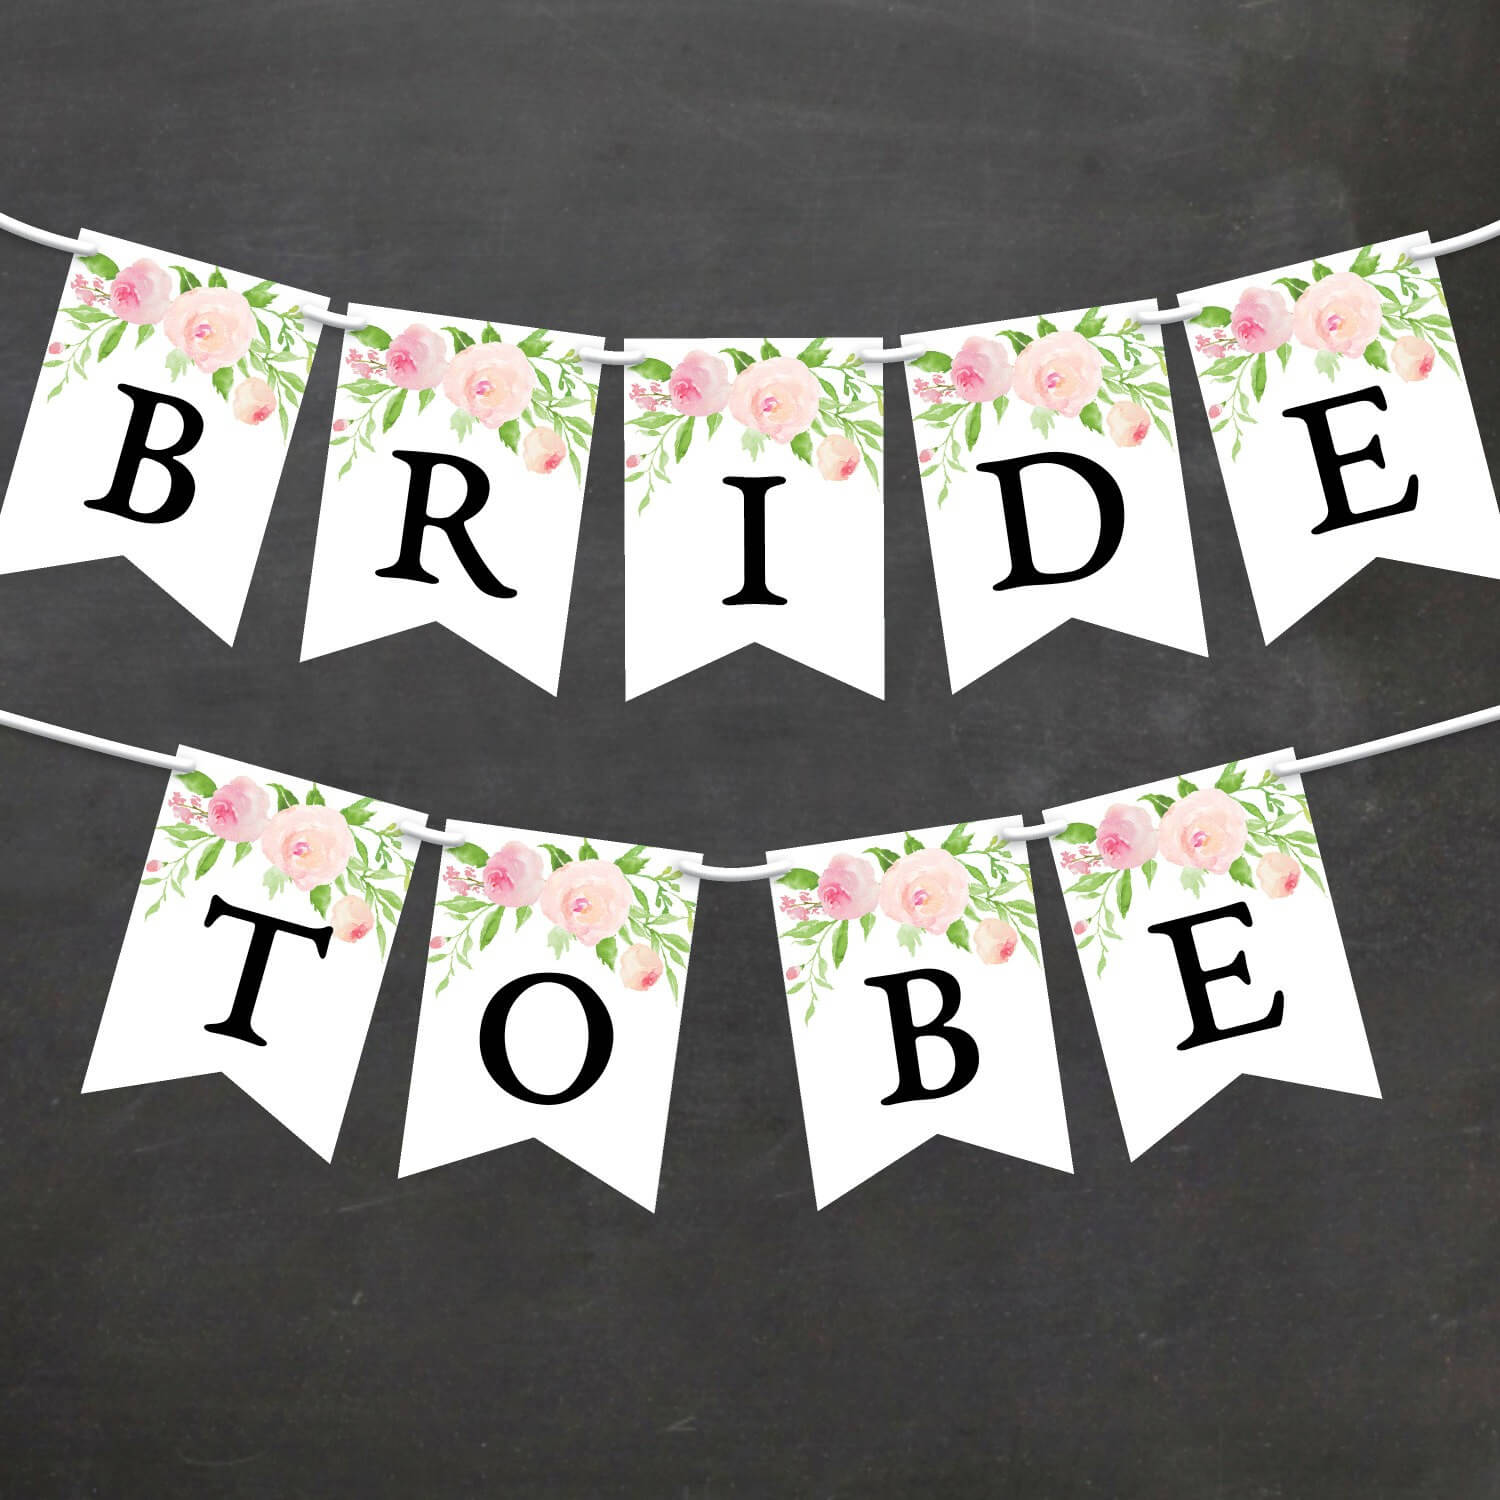 Bridal Shower Banner Template - Yatay.horizonconsulting.co Inside Bride To Be Banner Template